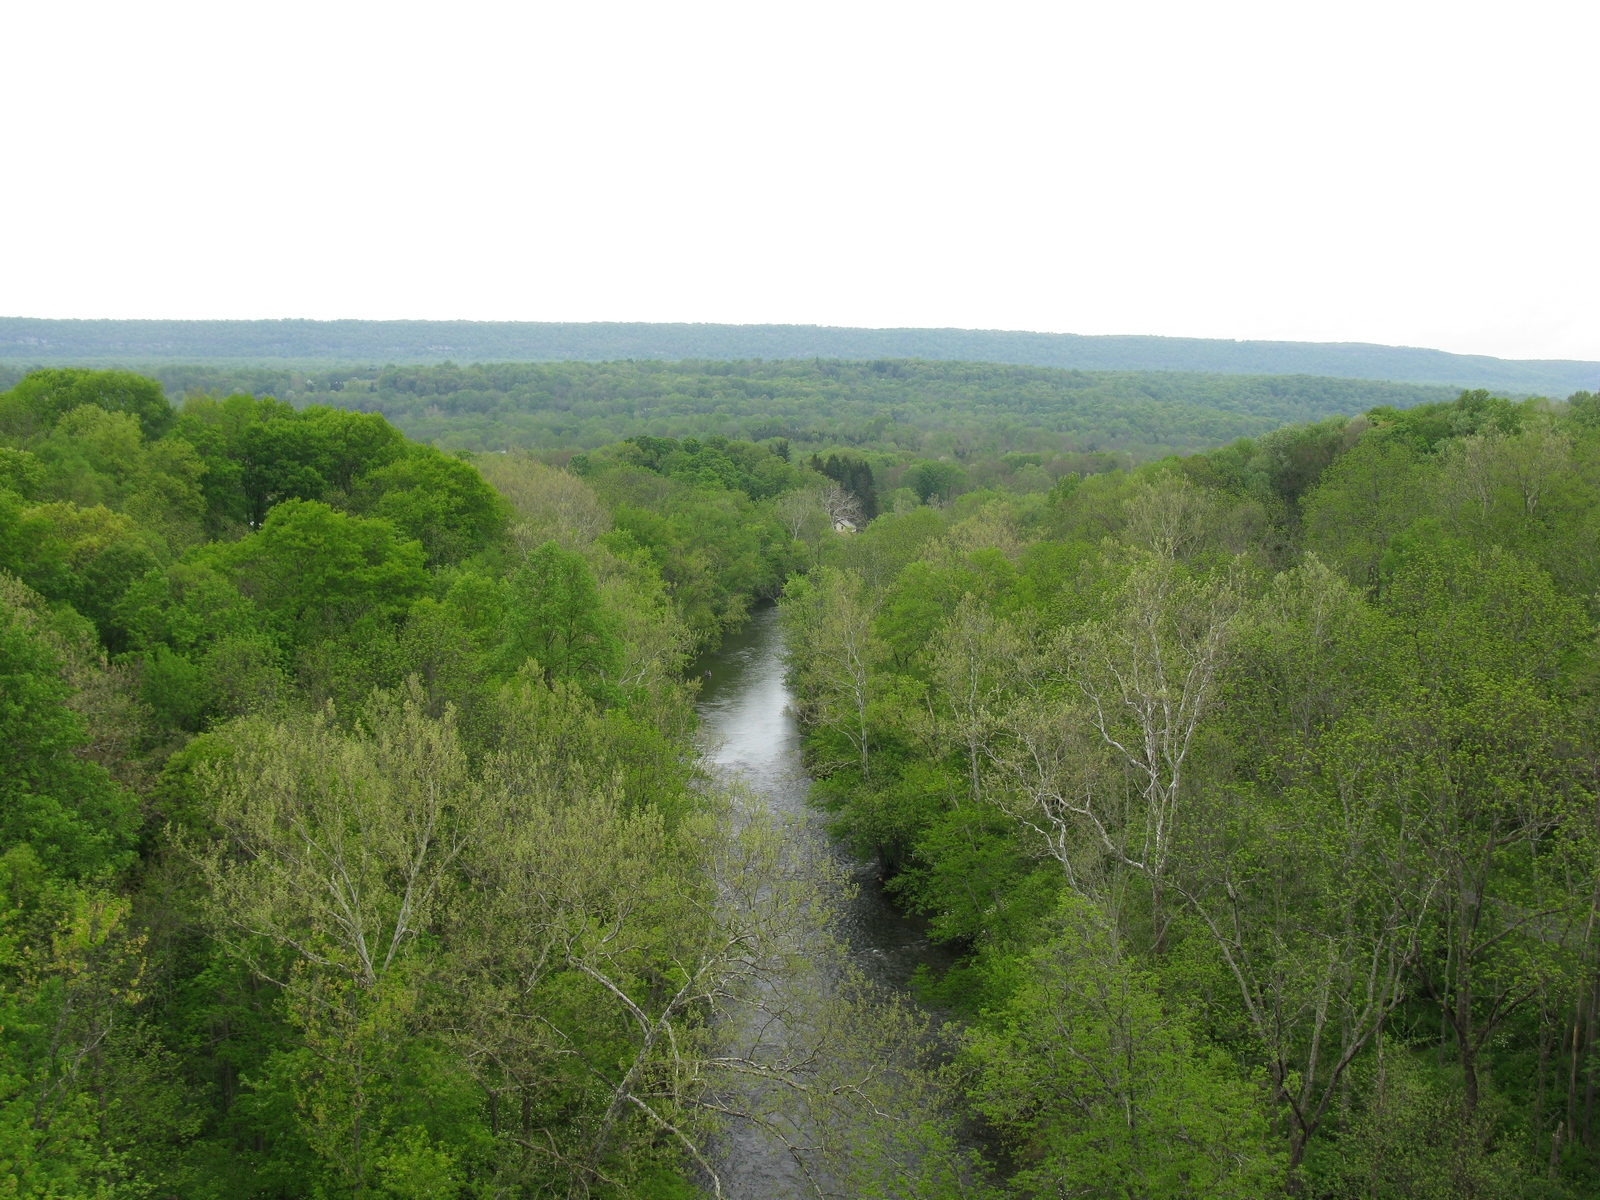 The Paulinskill flowing south from the Viaduct